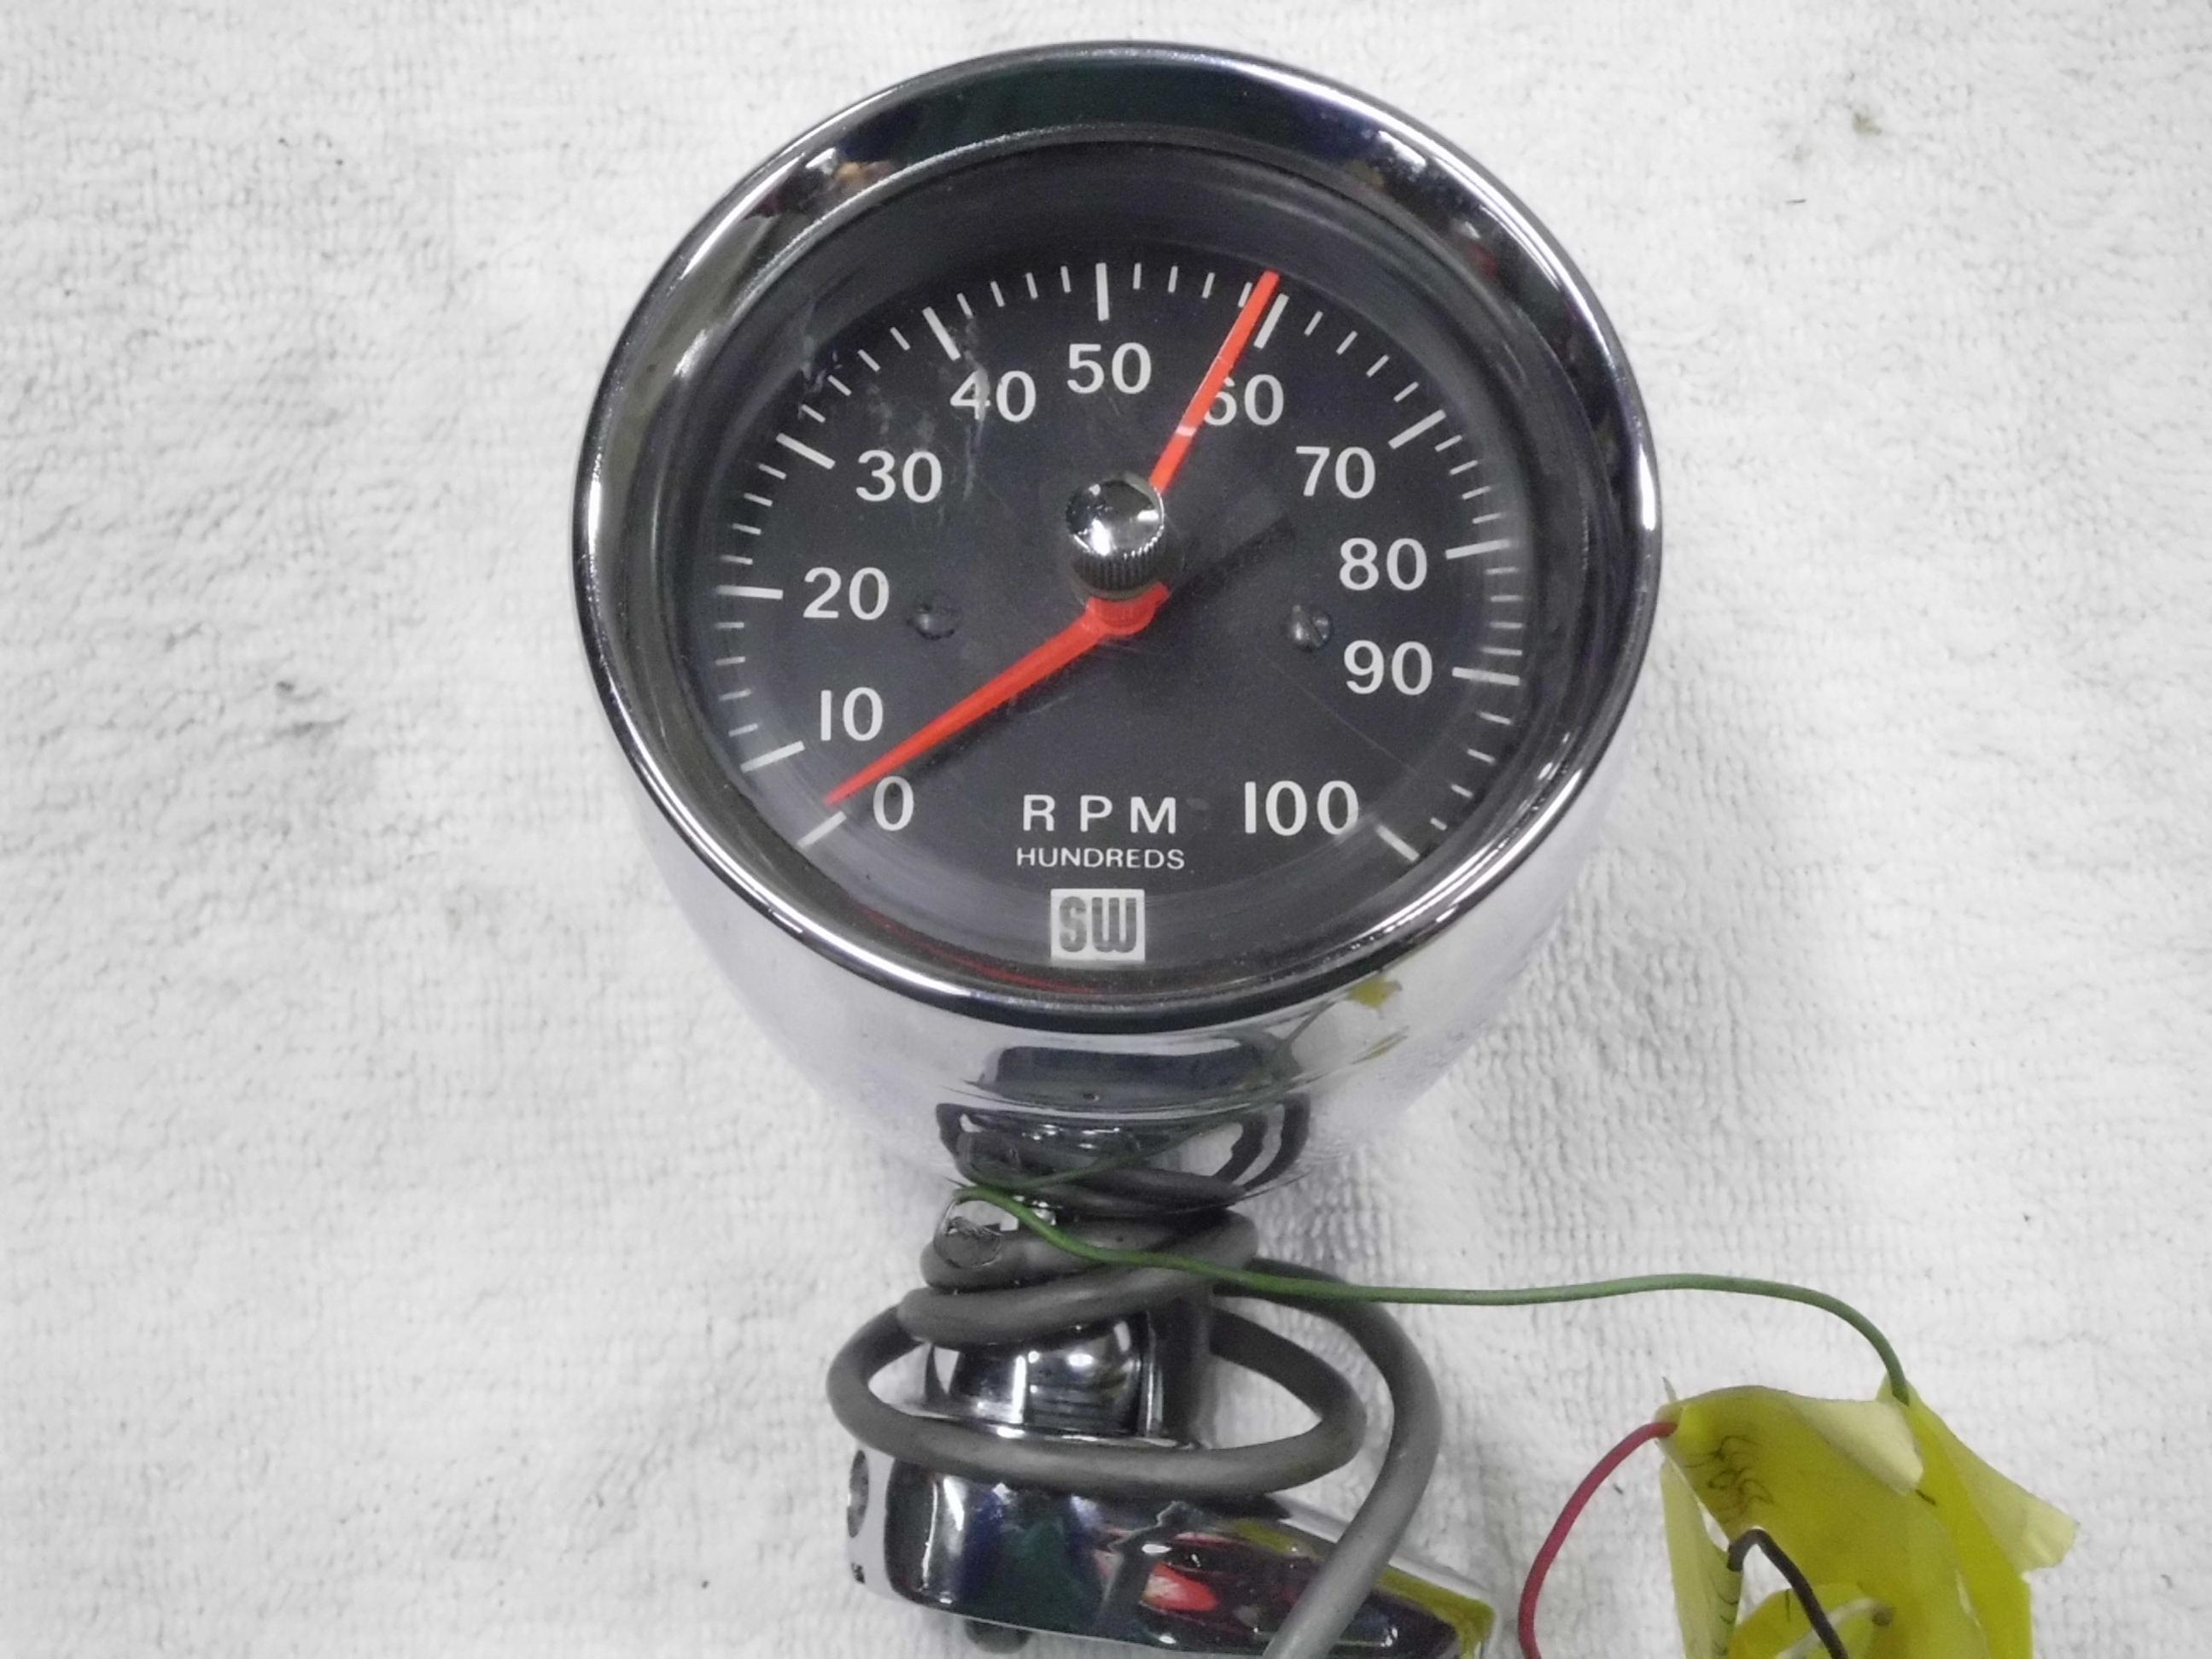 stewart warner tach the h a m b vintage stewart warner tachometer wiring diagram at panicattacktreatment.co